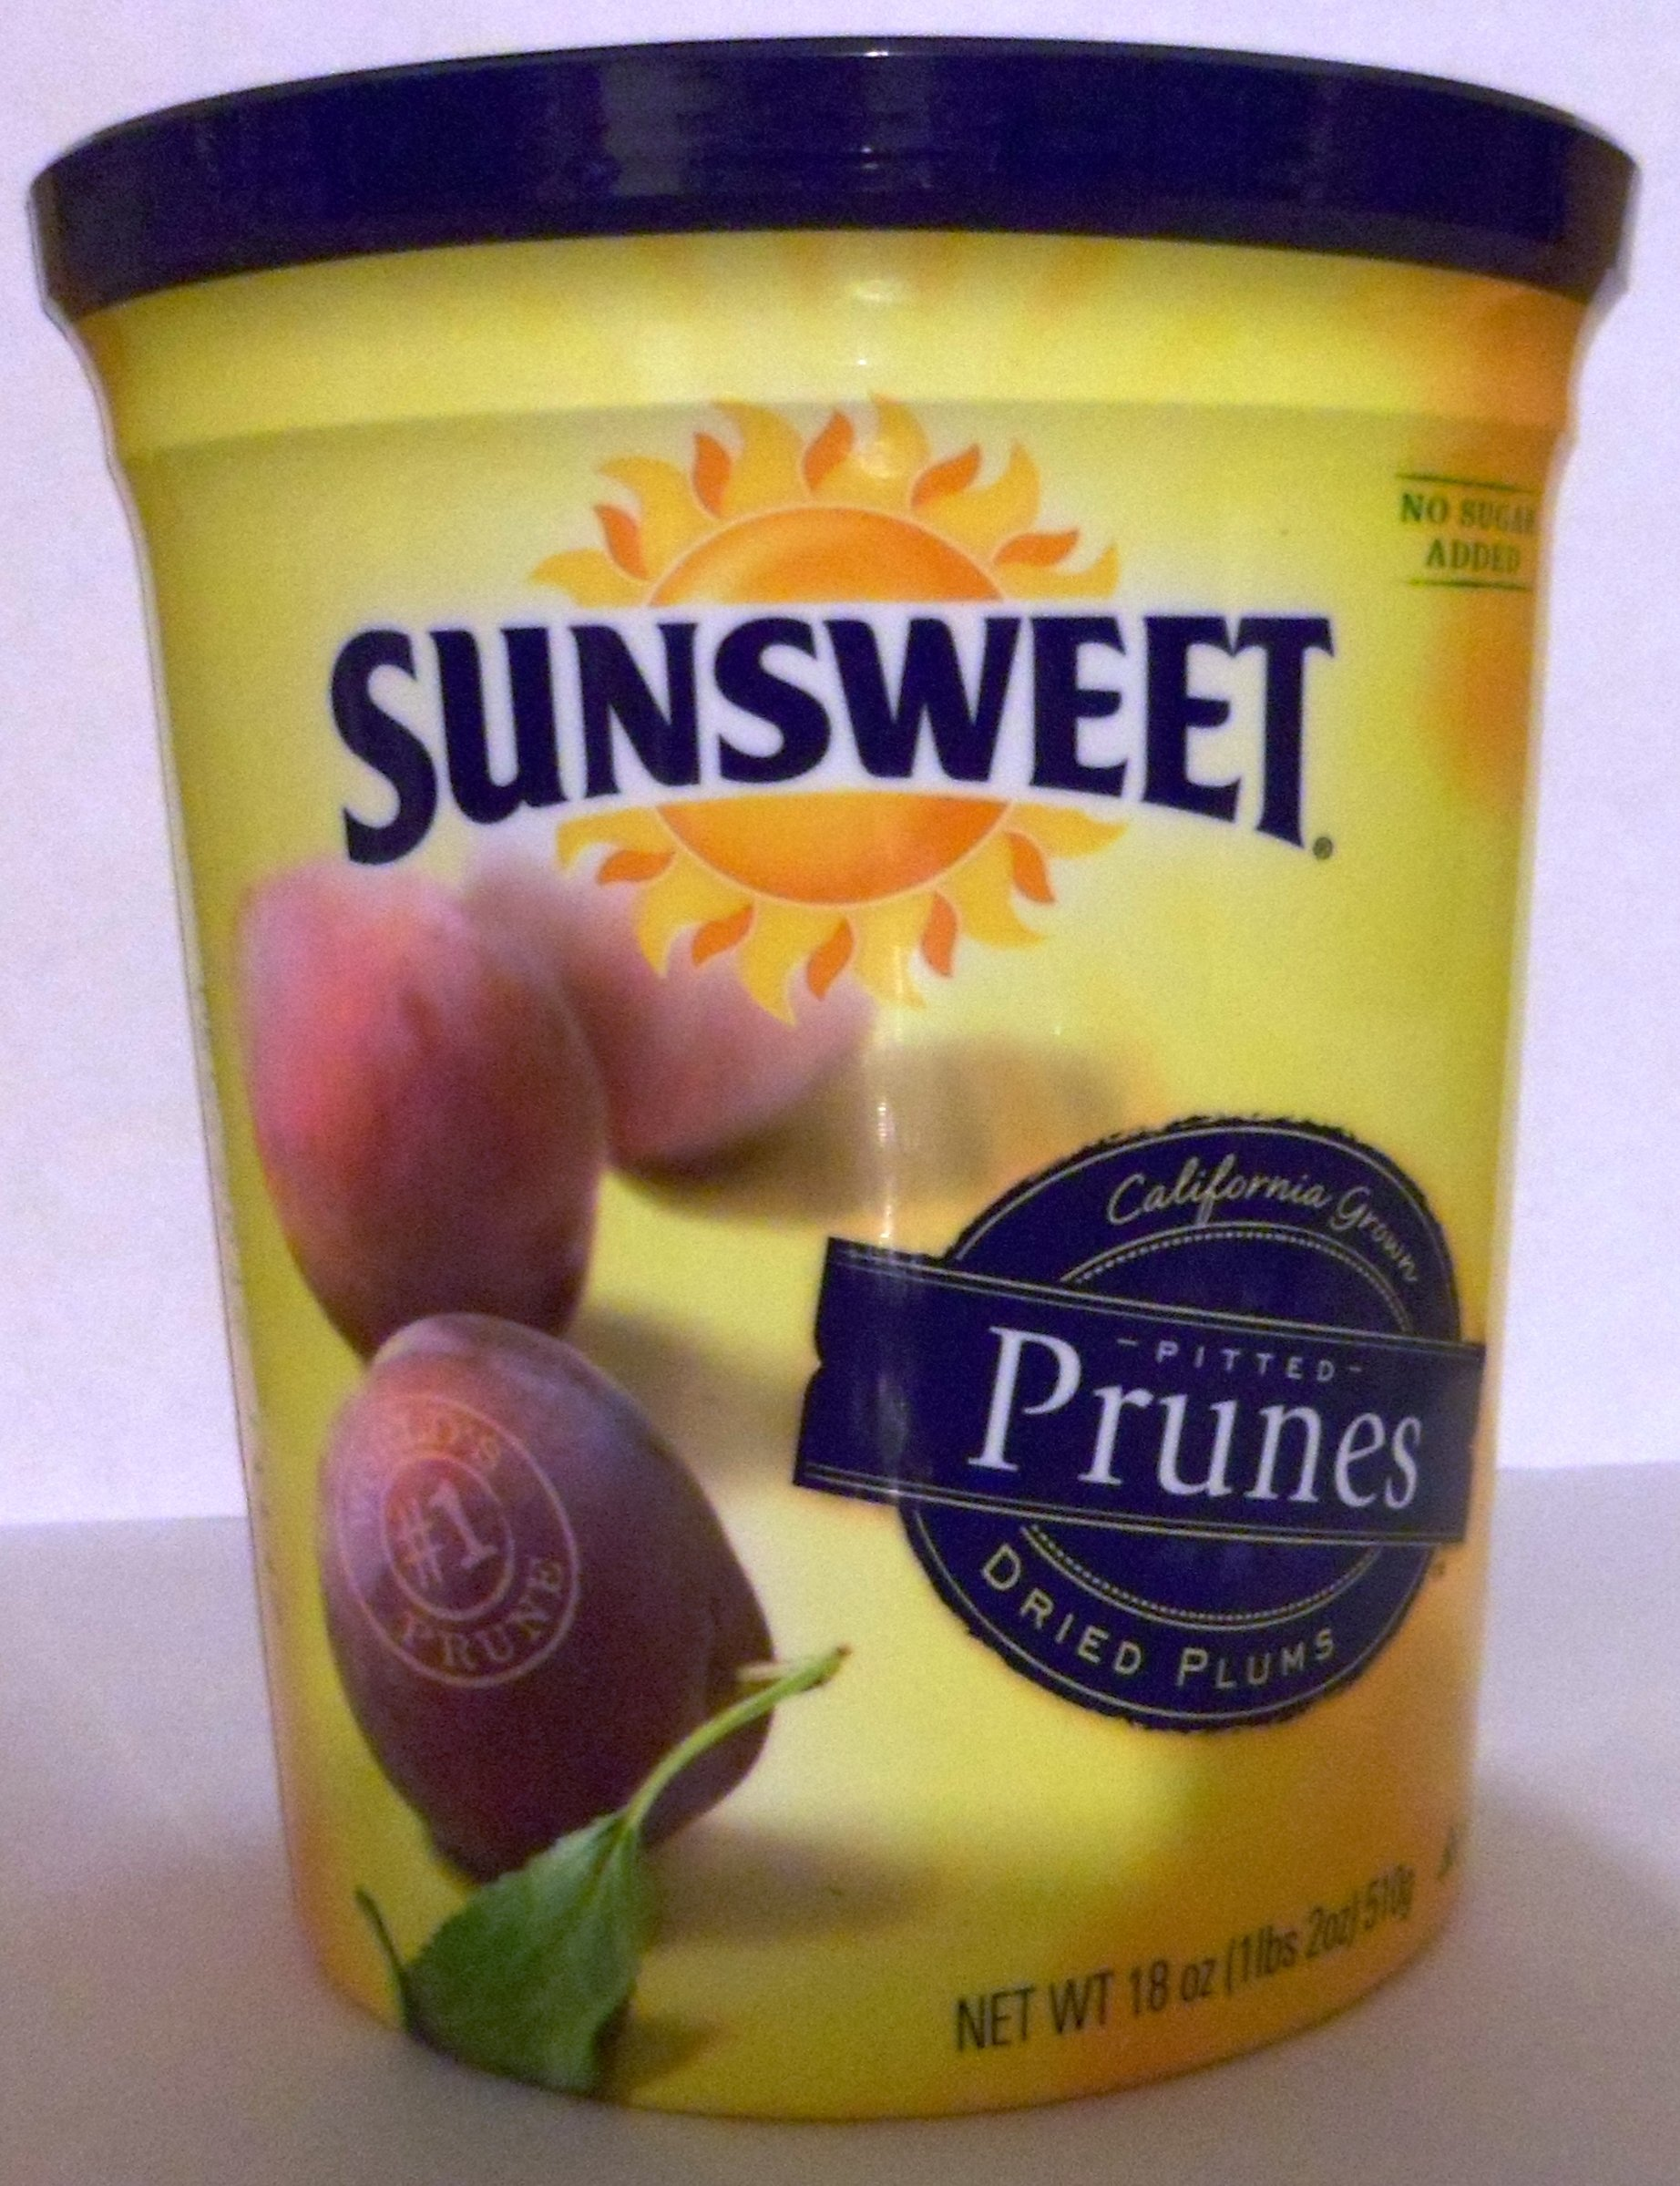 Sunsweet Pitted Prunes Net Wet 18 Oz (1 lbs 2 oz) 510g (Pack of 8)